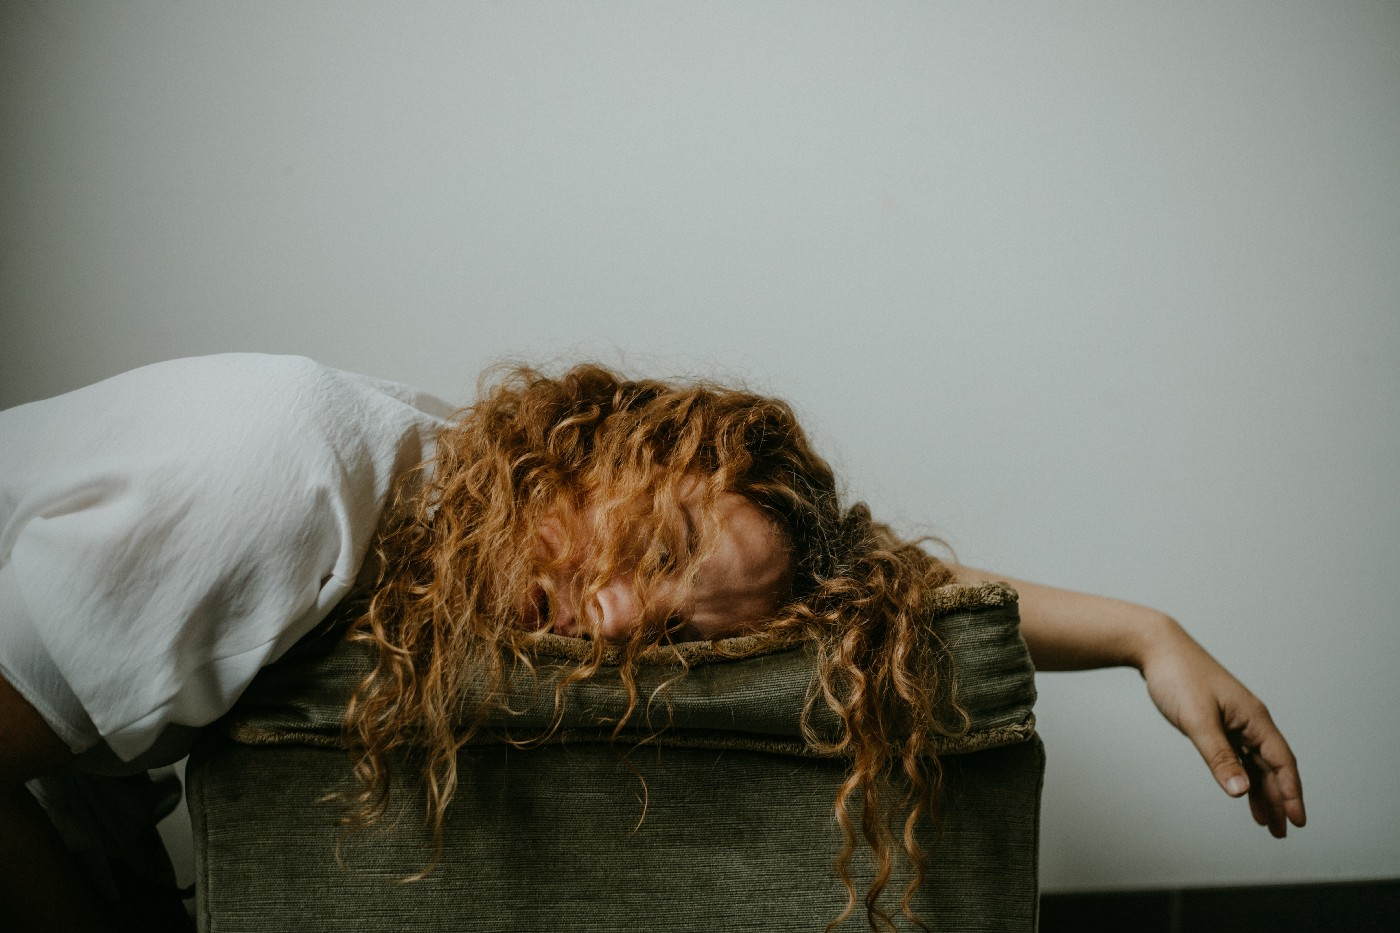 A young woman falls asleep with fatigue.